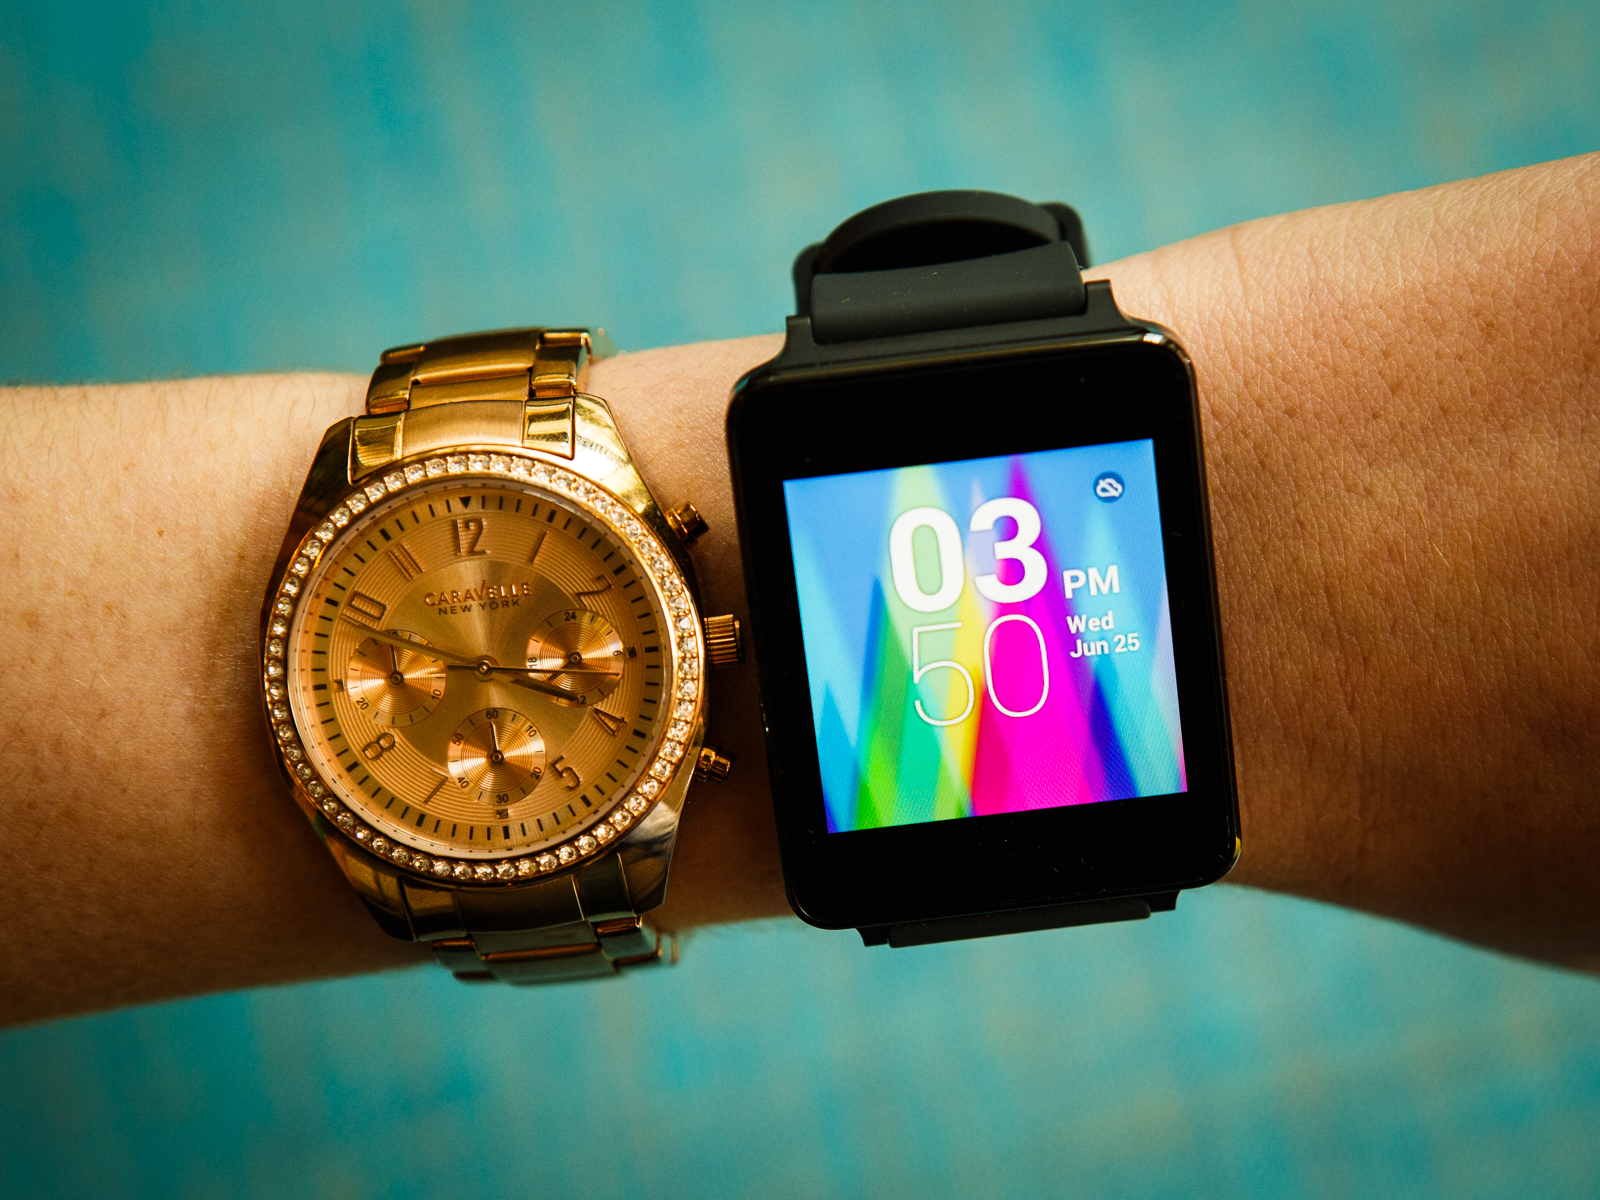 The LG G Watch (right) next to a Caravelle-made analog watch.